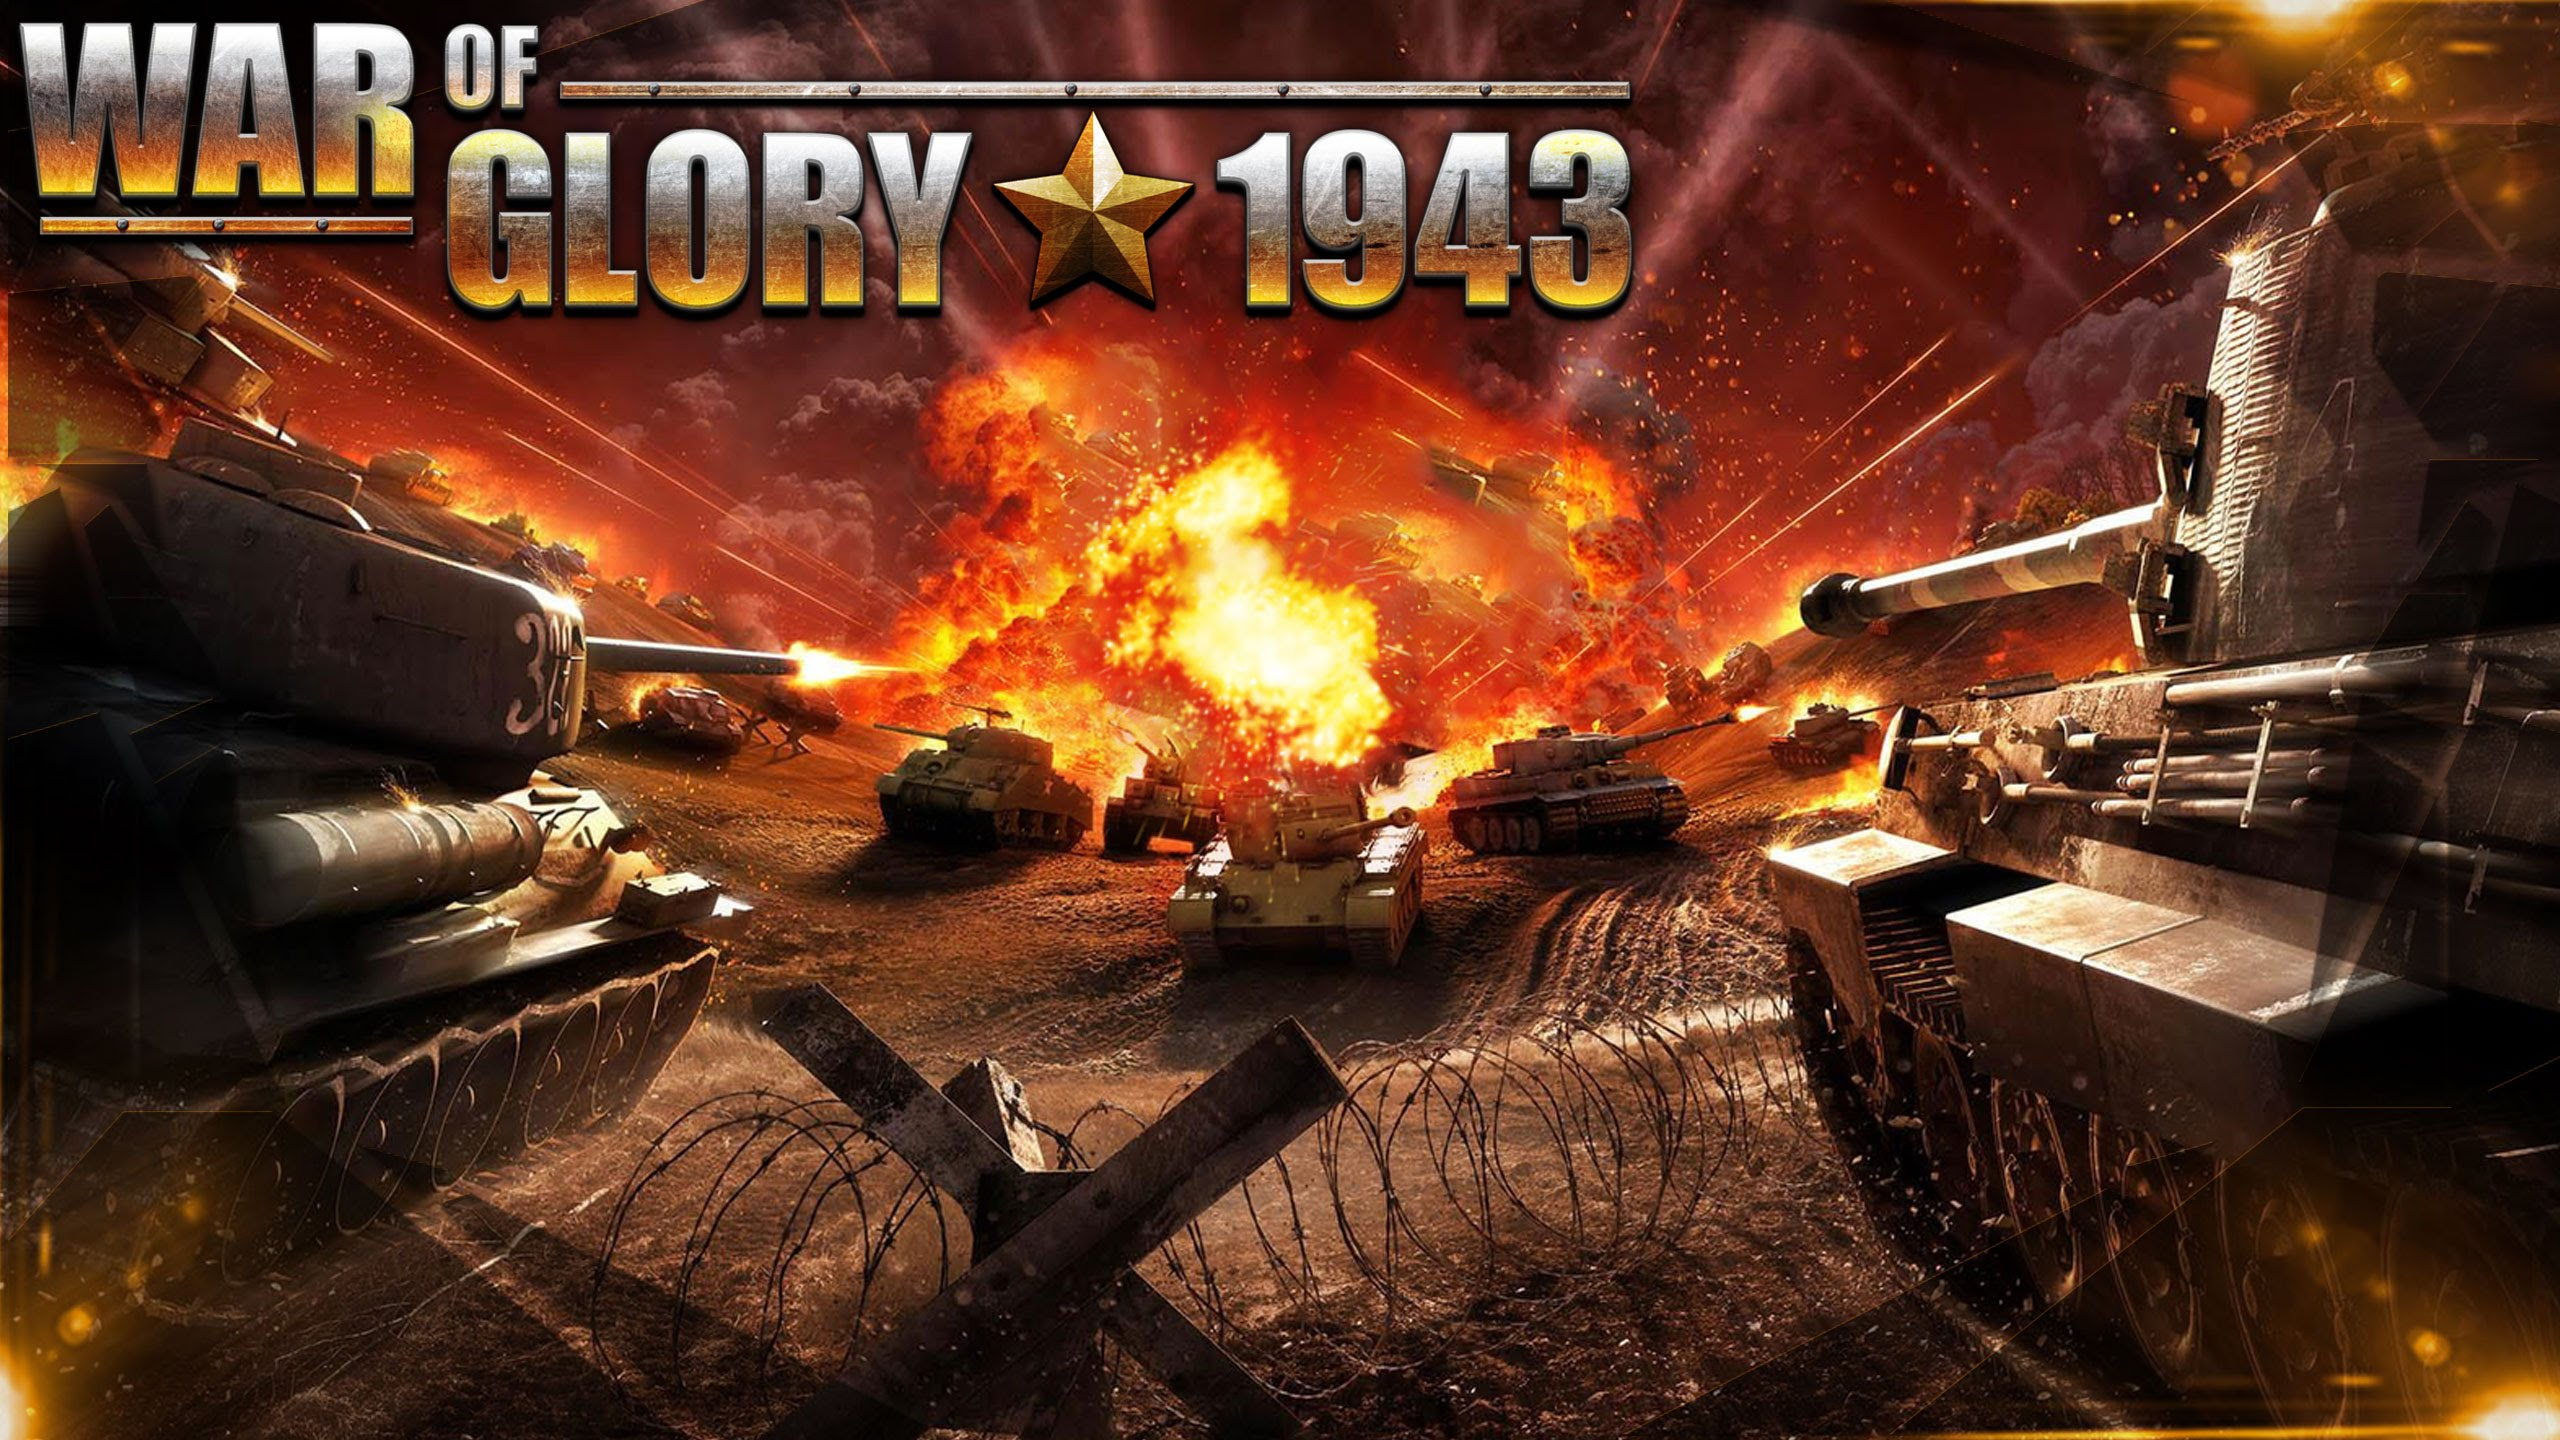 war of glory 1943